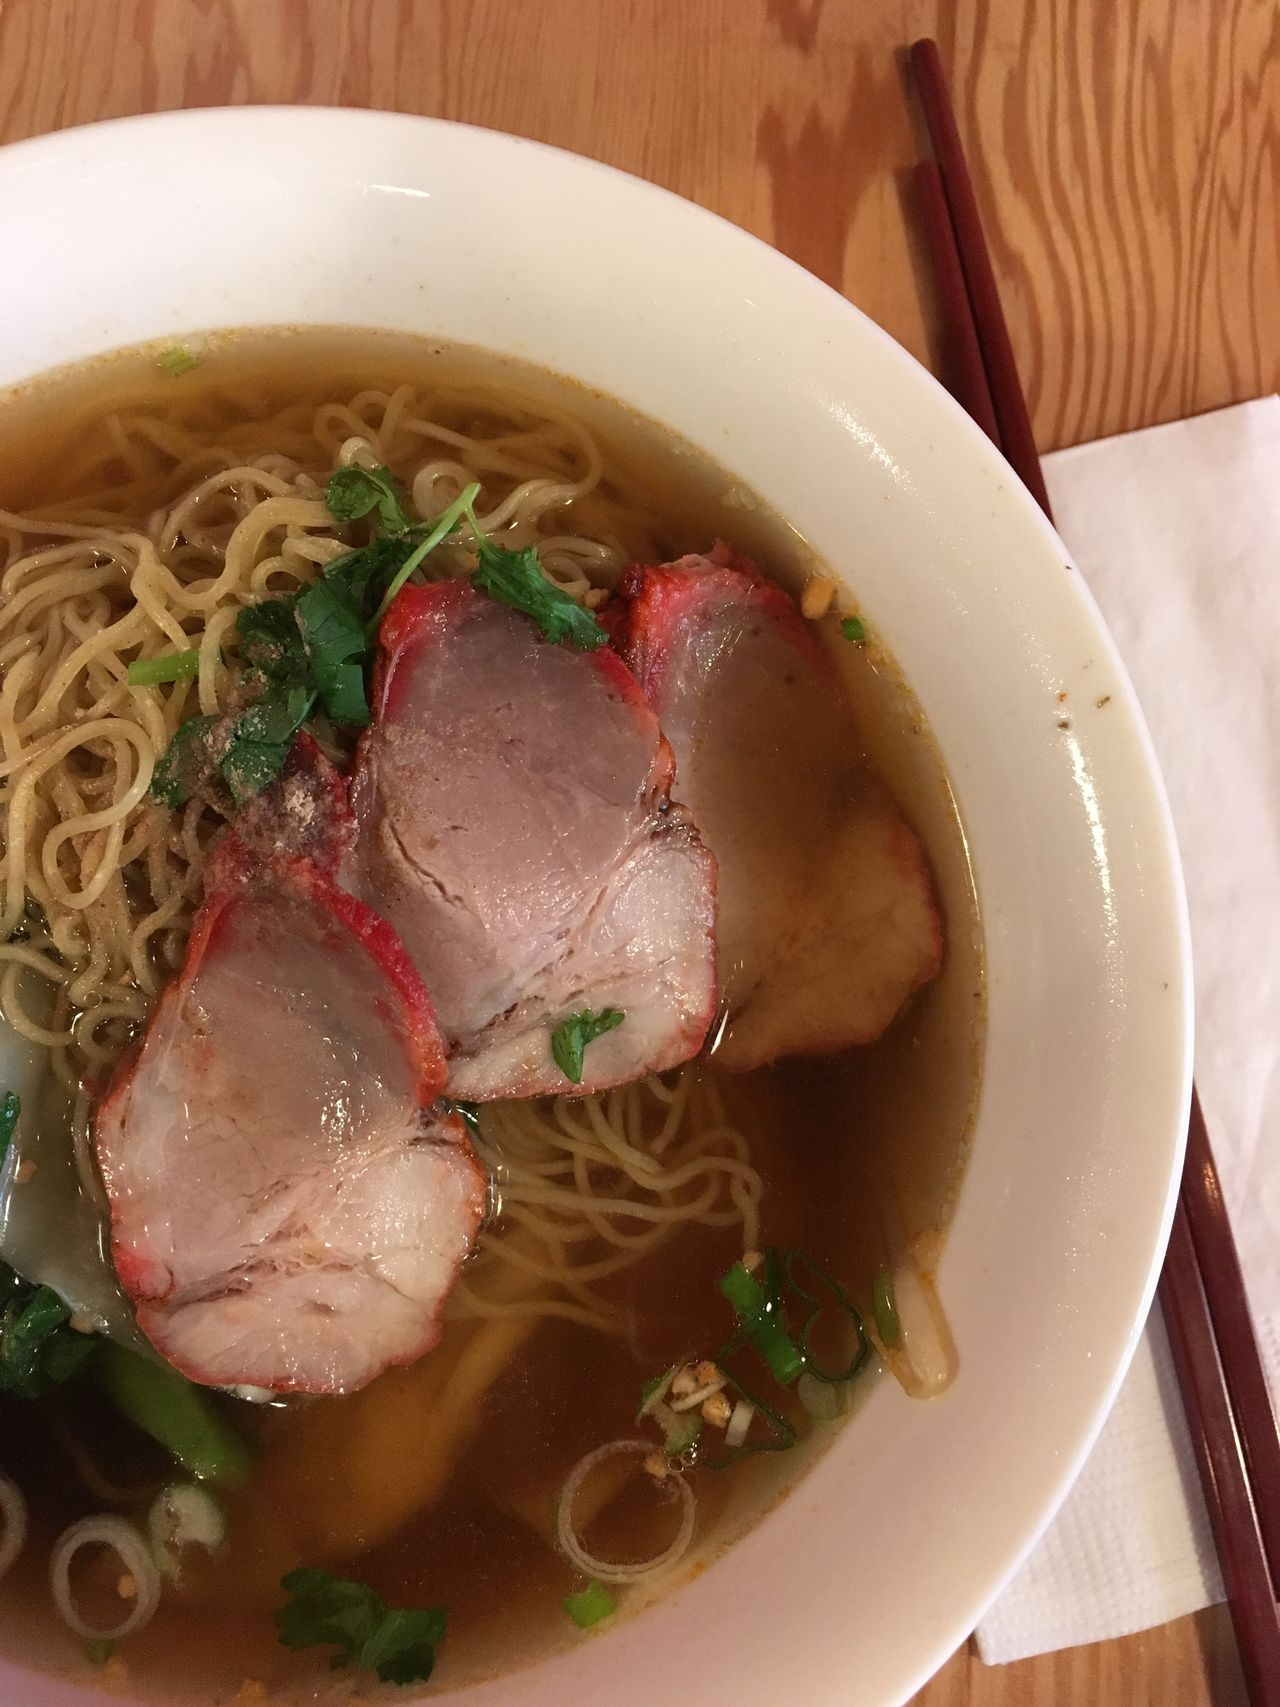 Food Bowl Noodle Soup Healthy Eating Meal